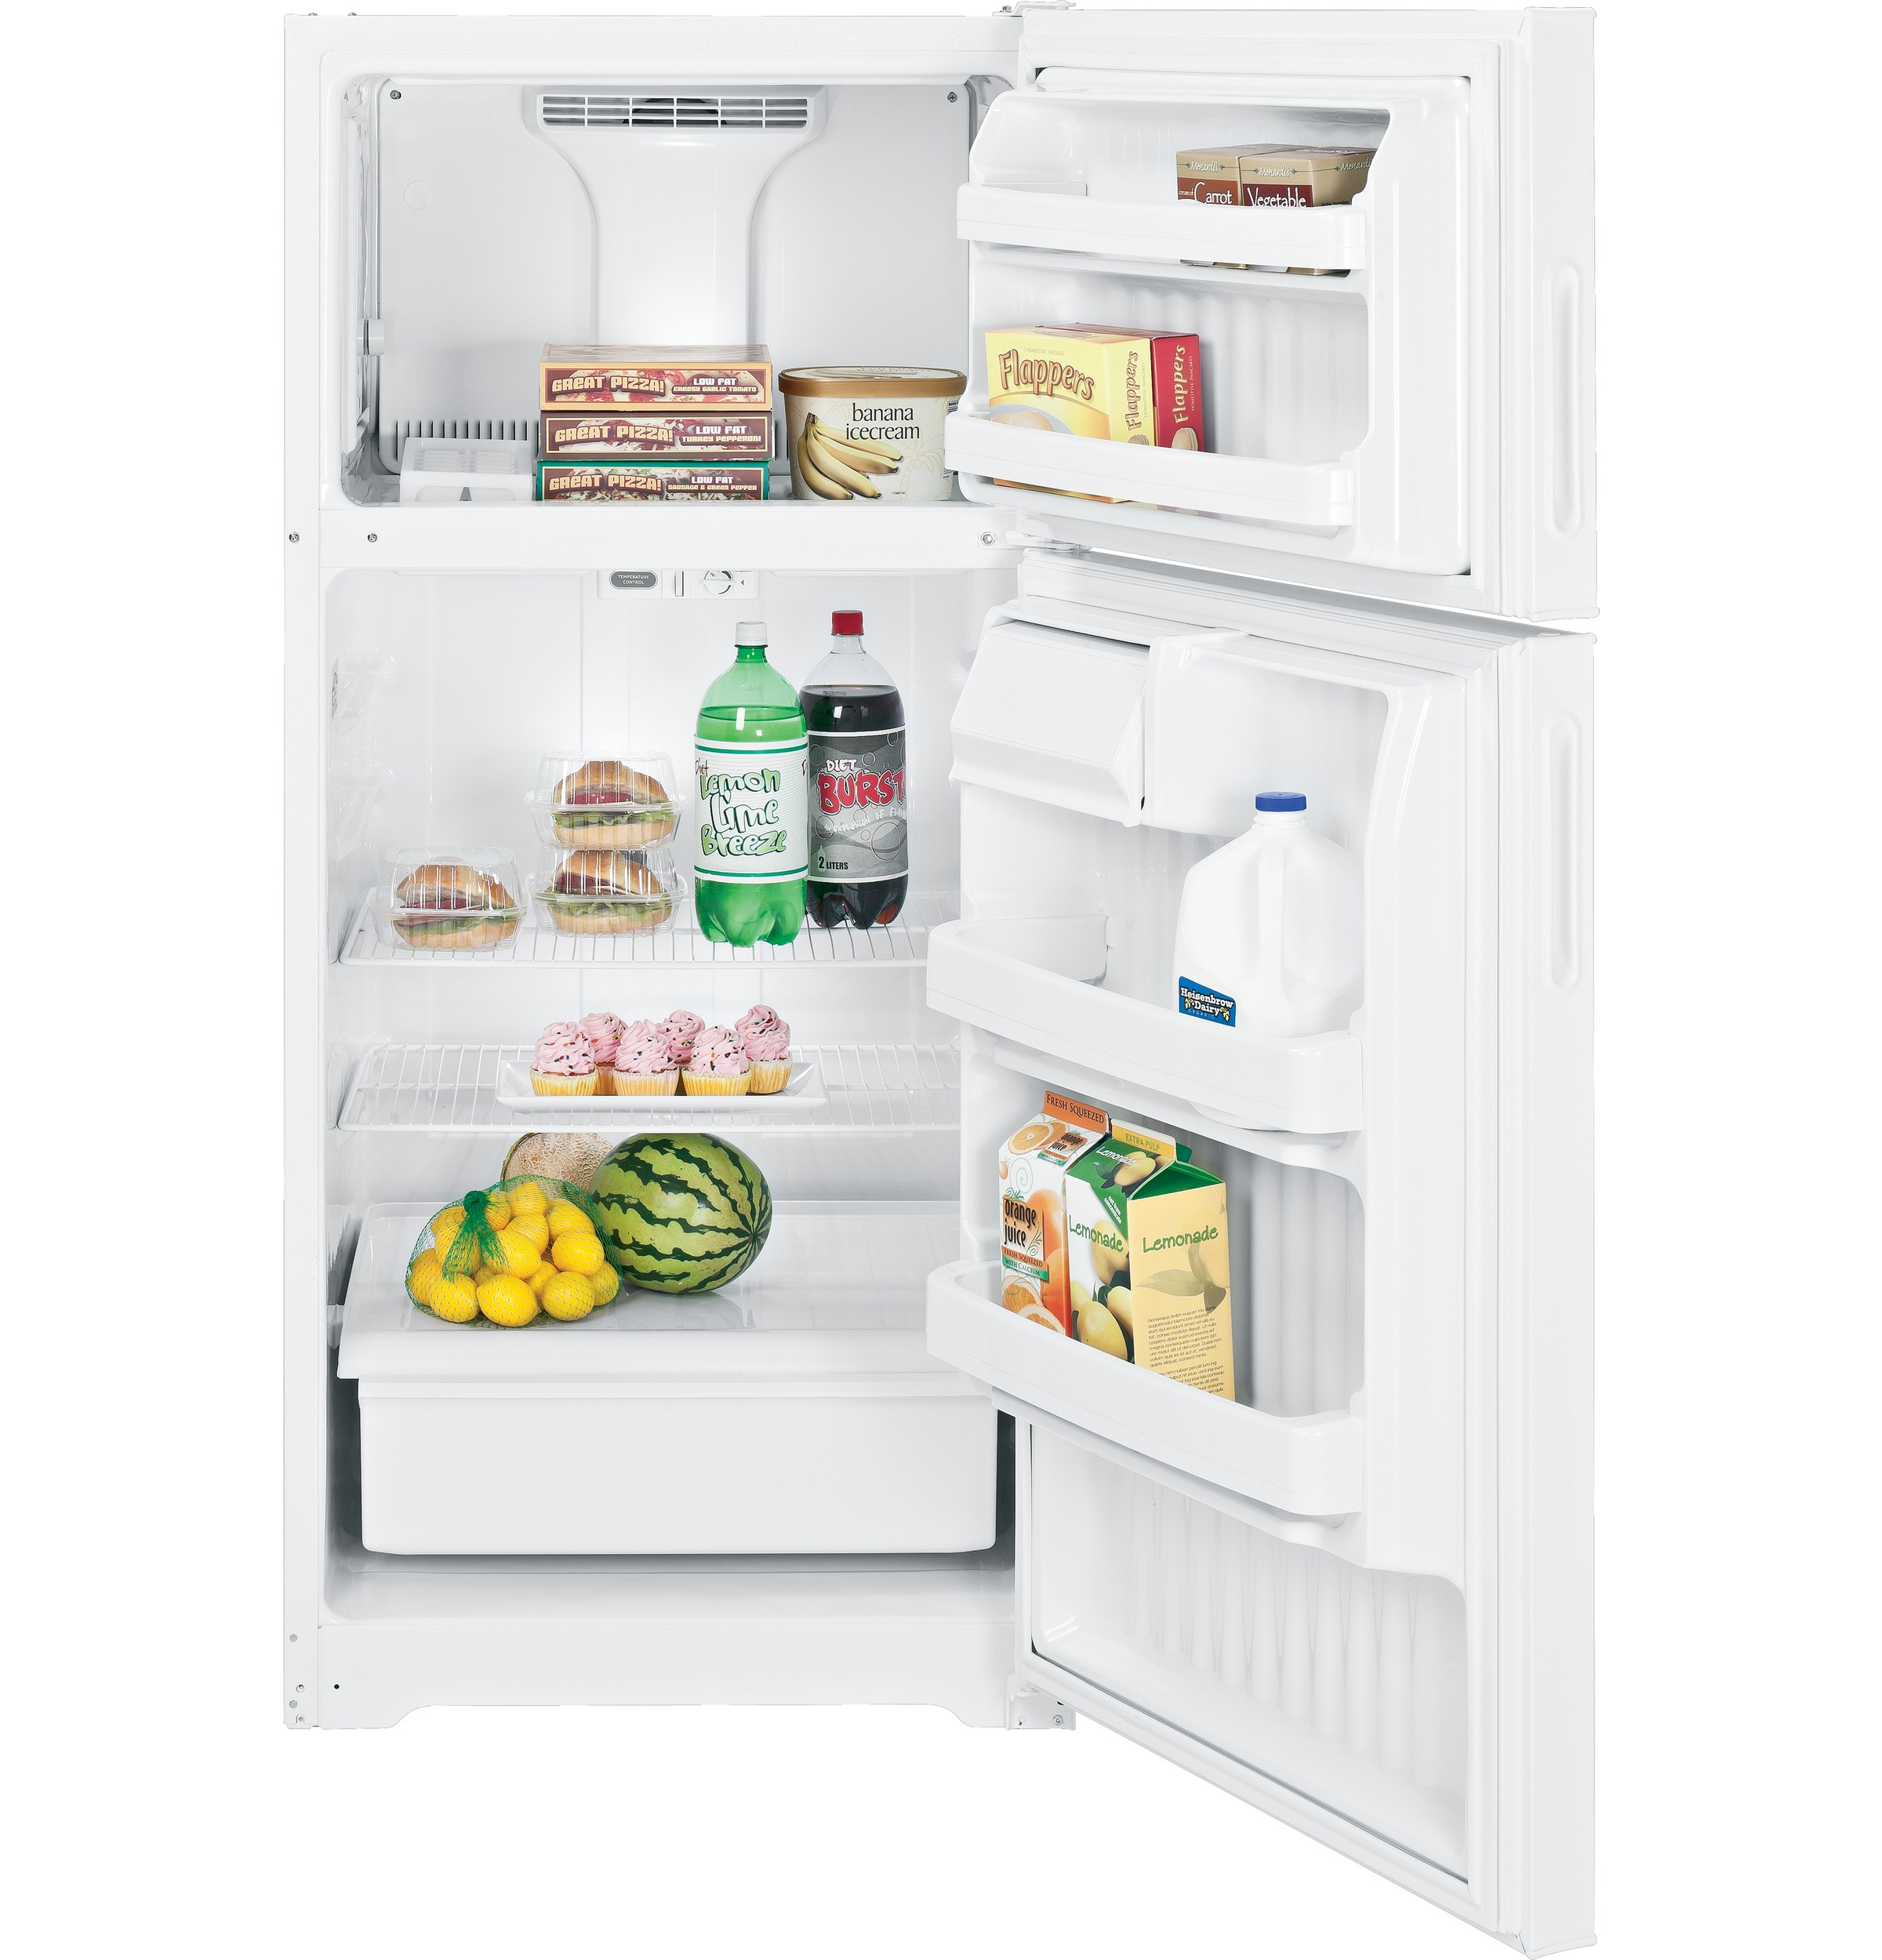 Hotpoint 156 cu ft top freezer refrigerator htr16absrww ge product image product image publicscrutiny Choice Image